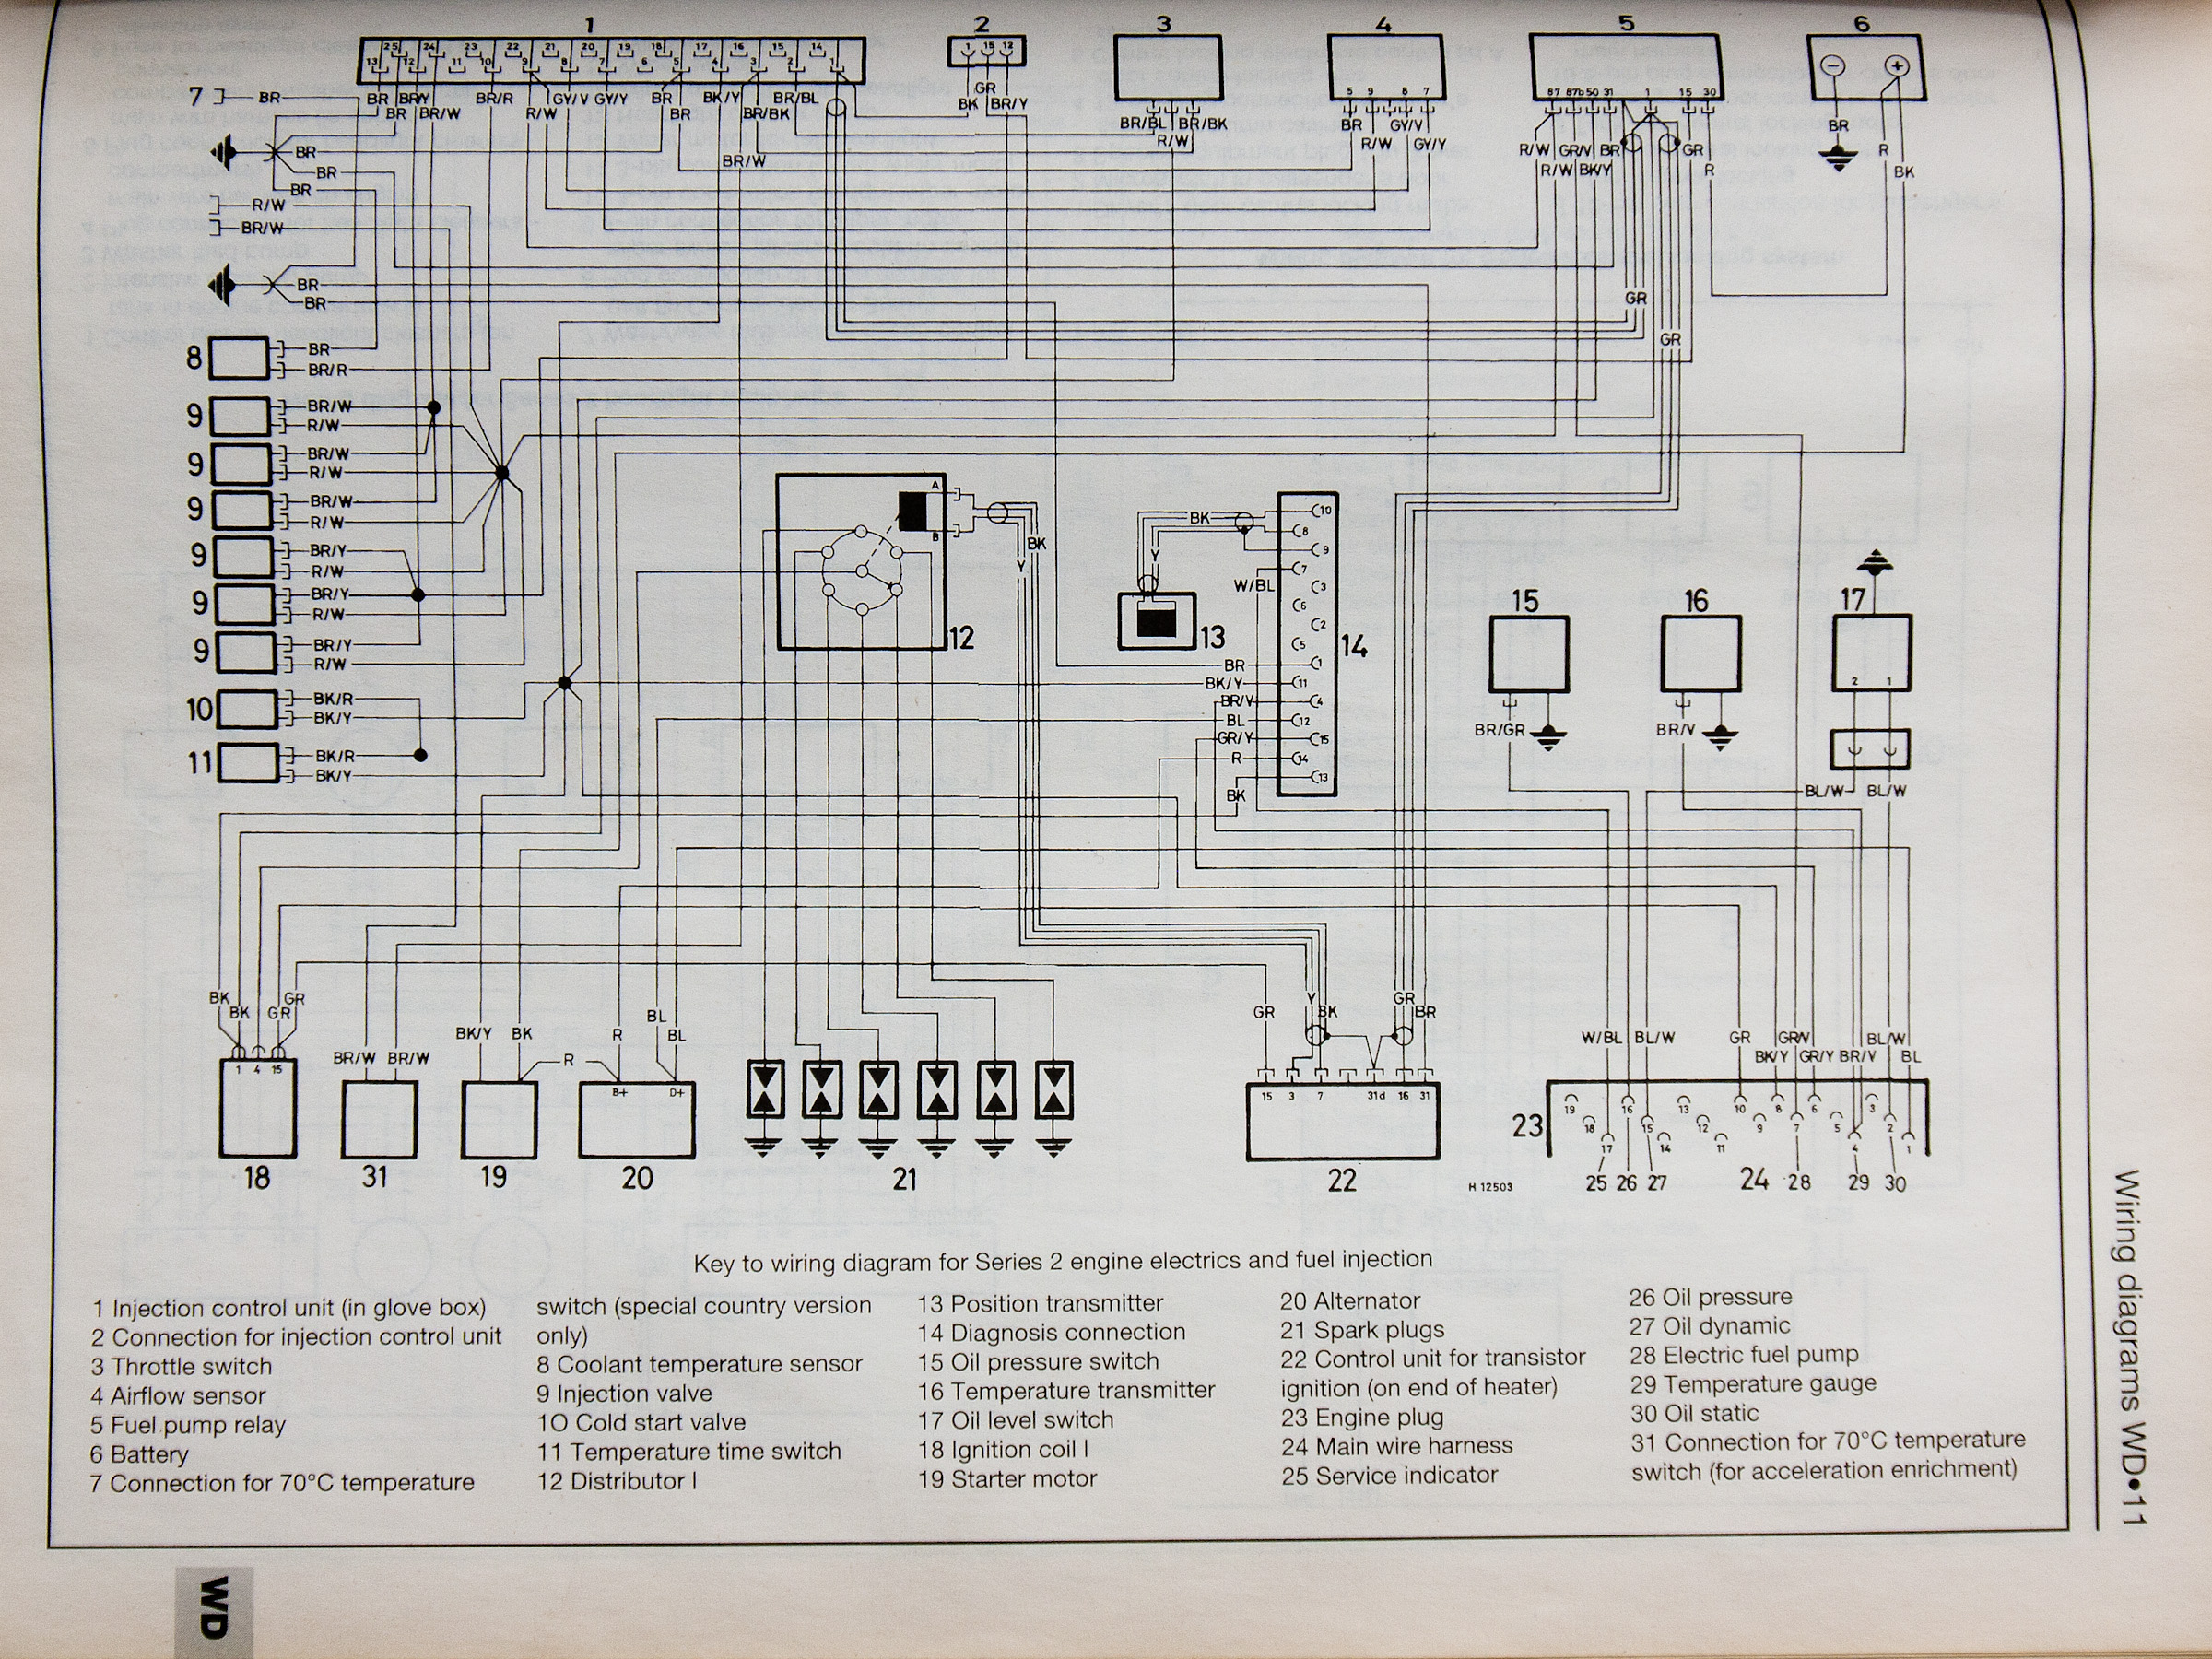 e30_ljetronic_001 e30_ljetronic_001 jpg e28 wiring diagram at readyjetset.co